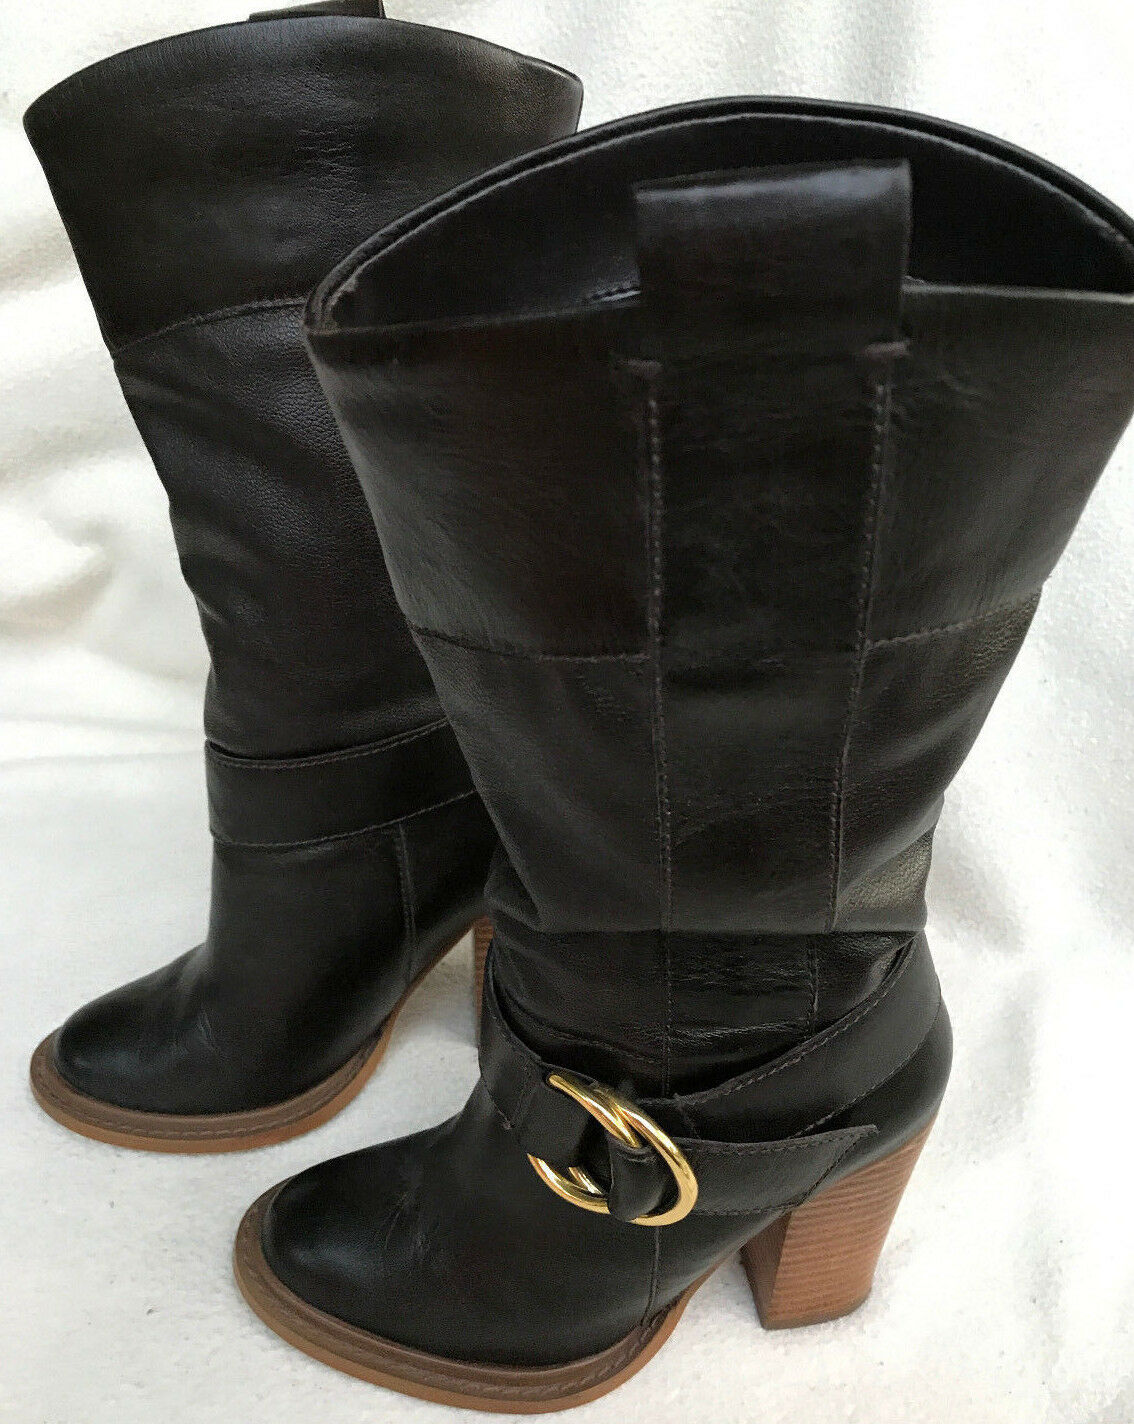 Colin Stuart Dark Brown Leather Buckle Mid-Calf Pull-On Shoes Boots Women's 5 M